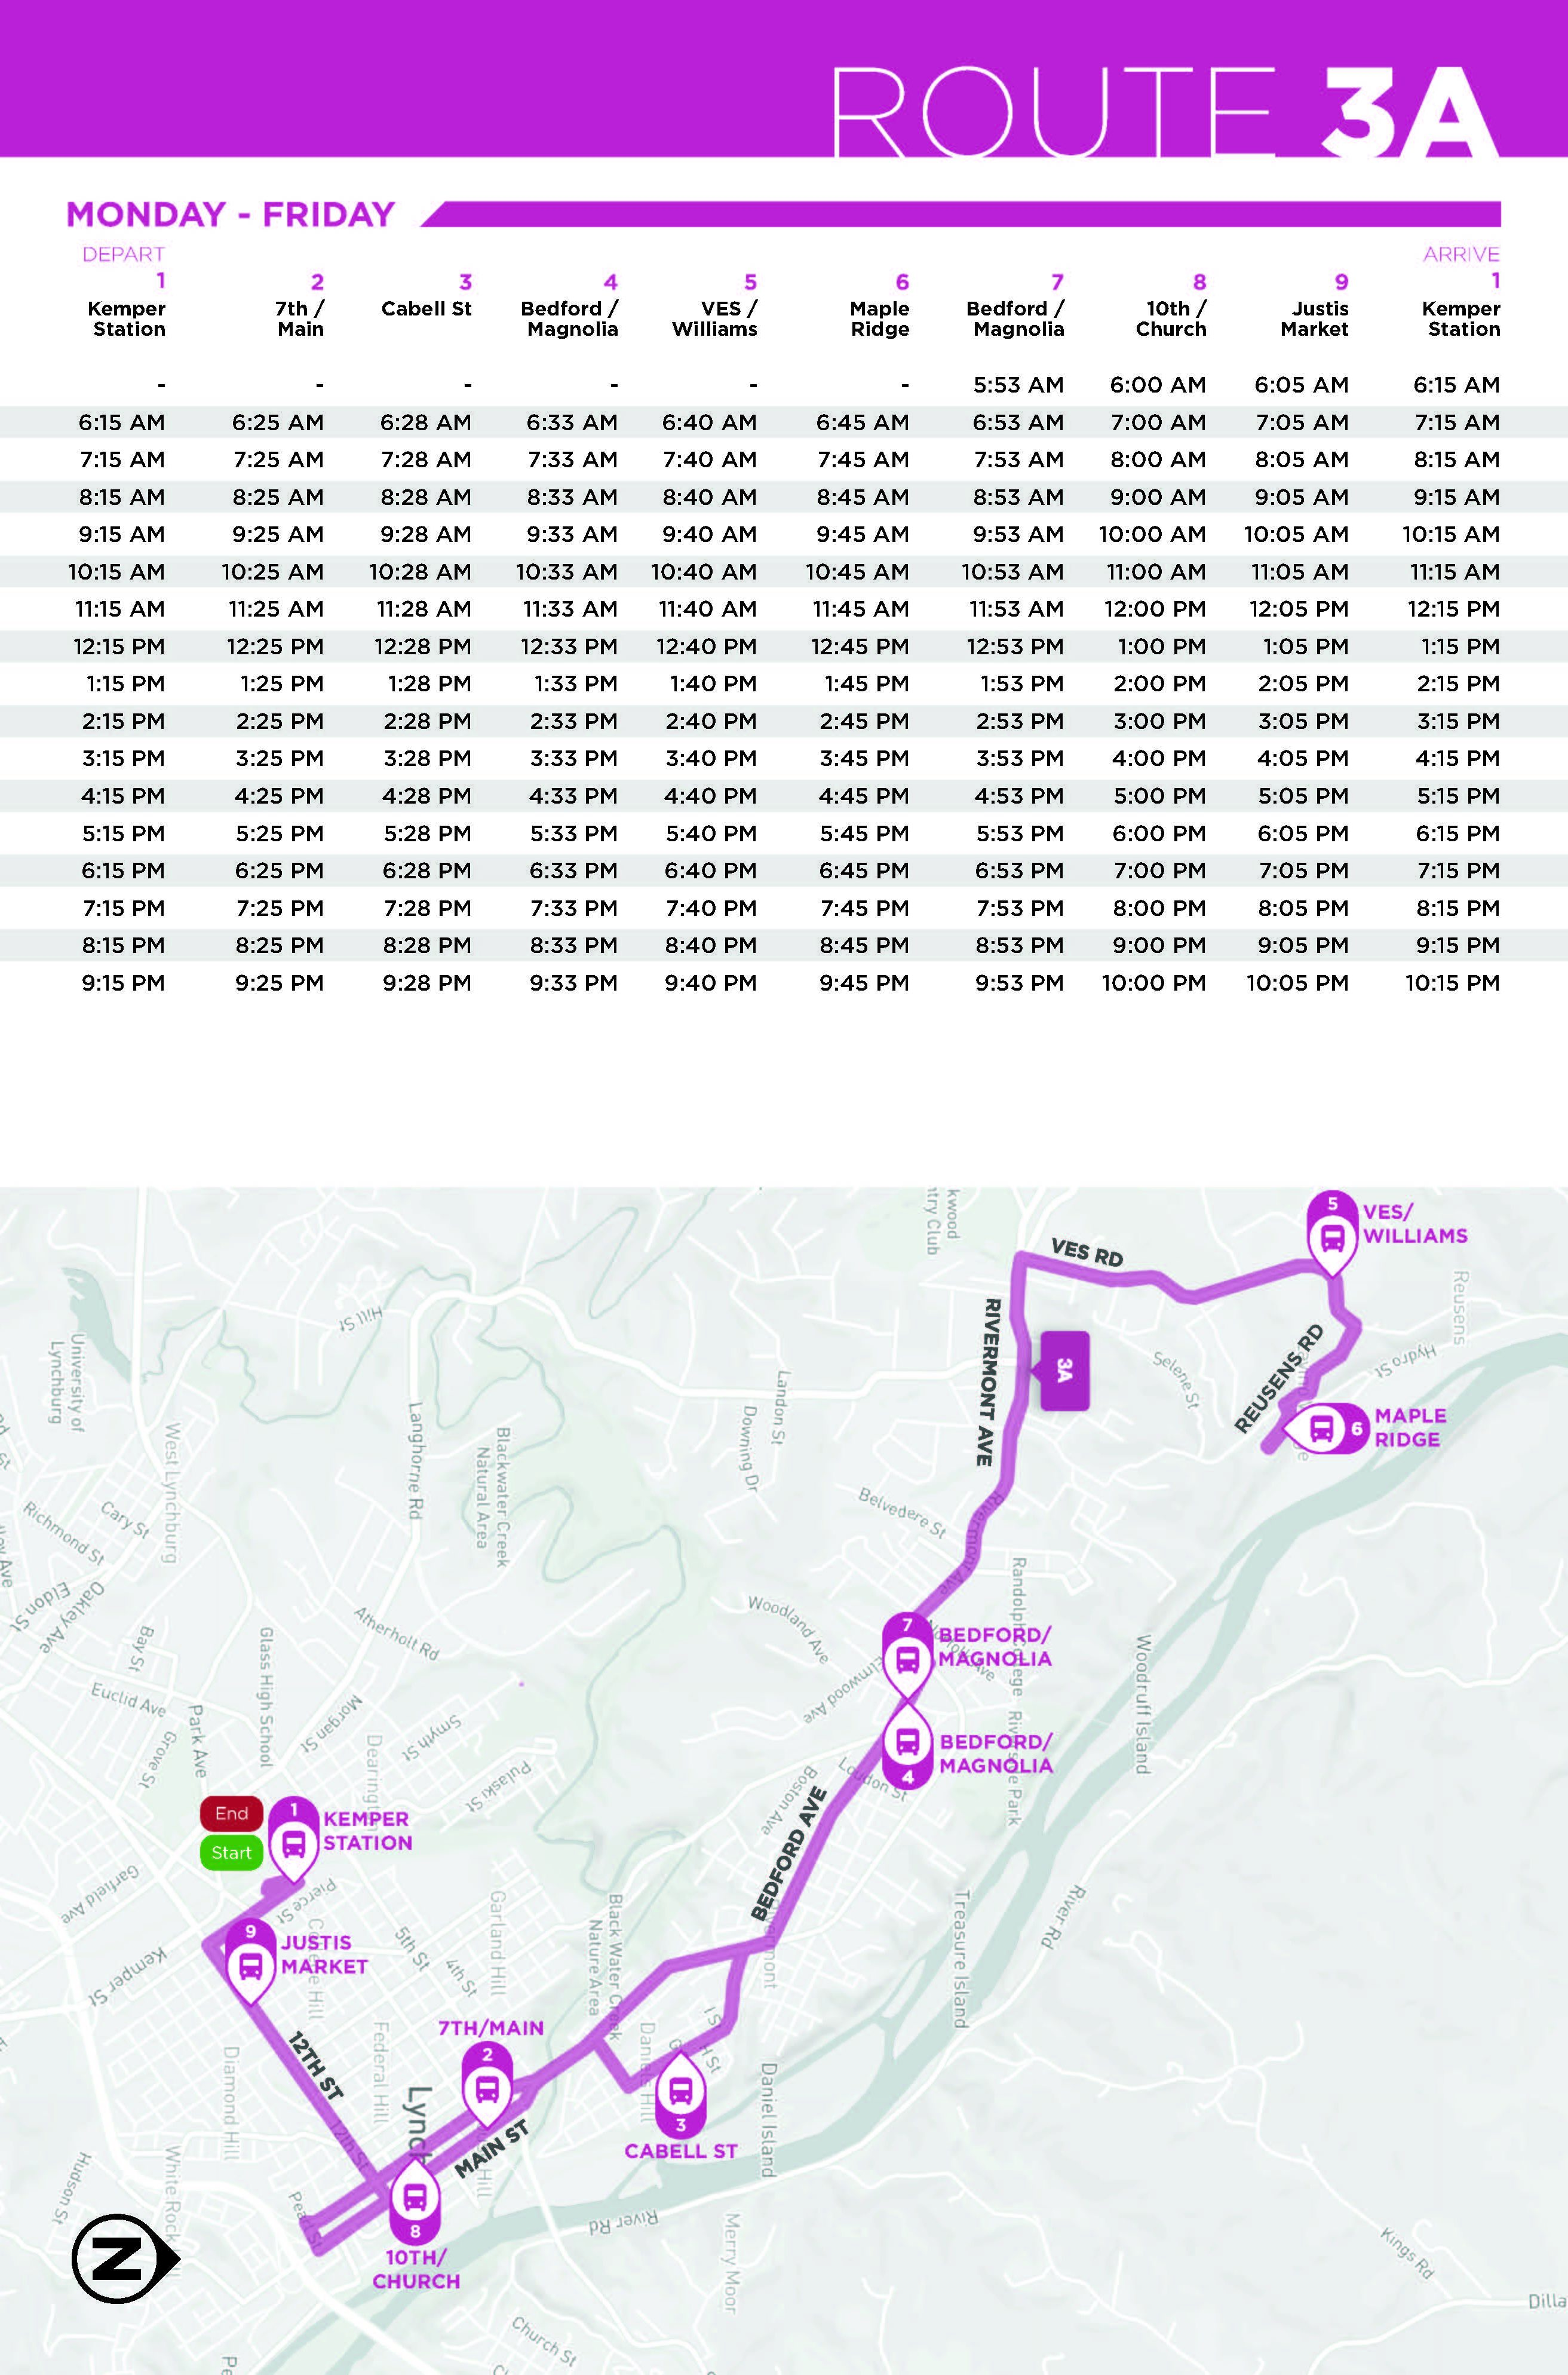 Route 3A Monday - Friday Map and Schedule